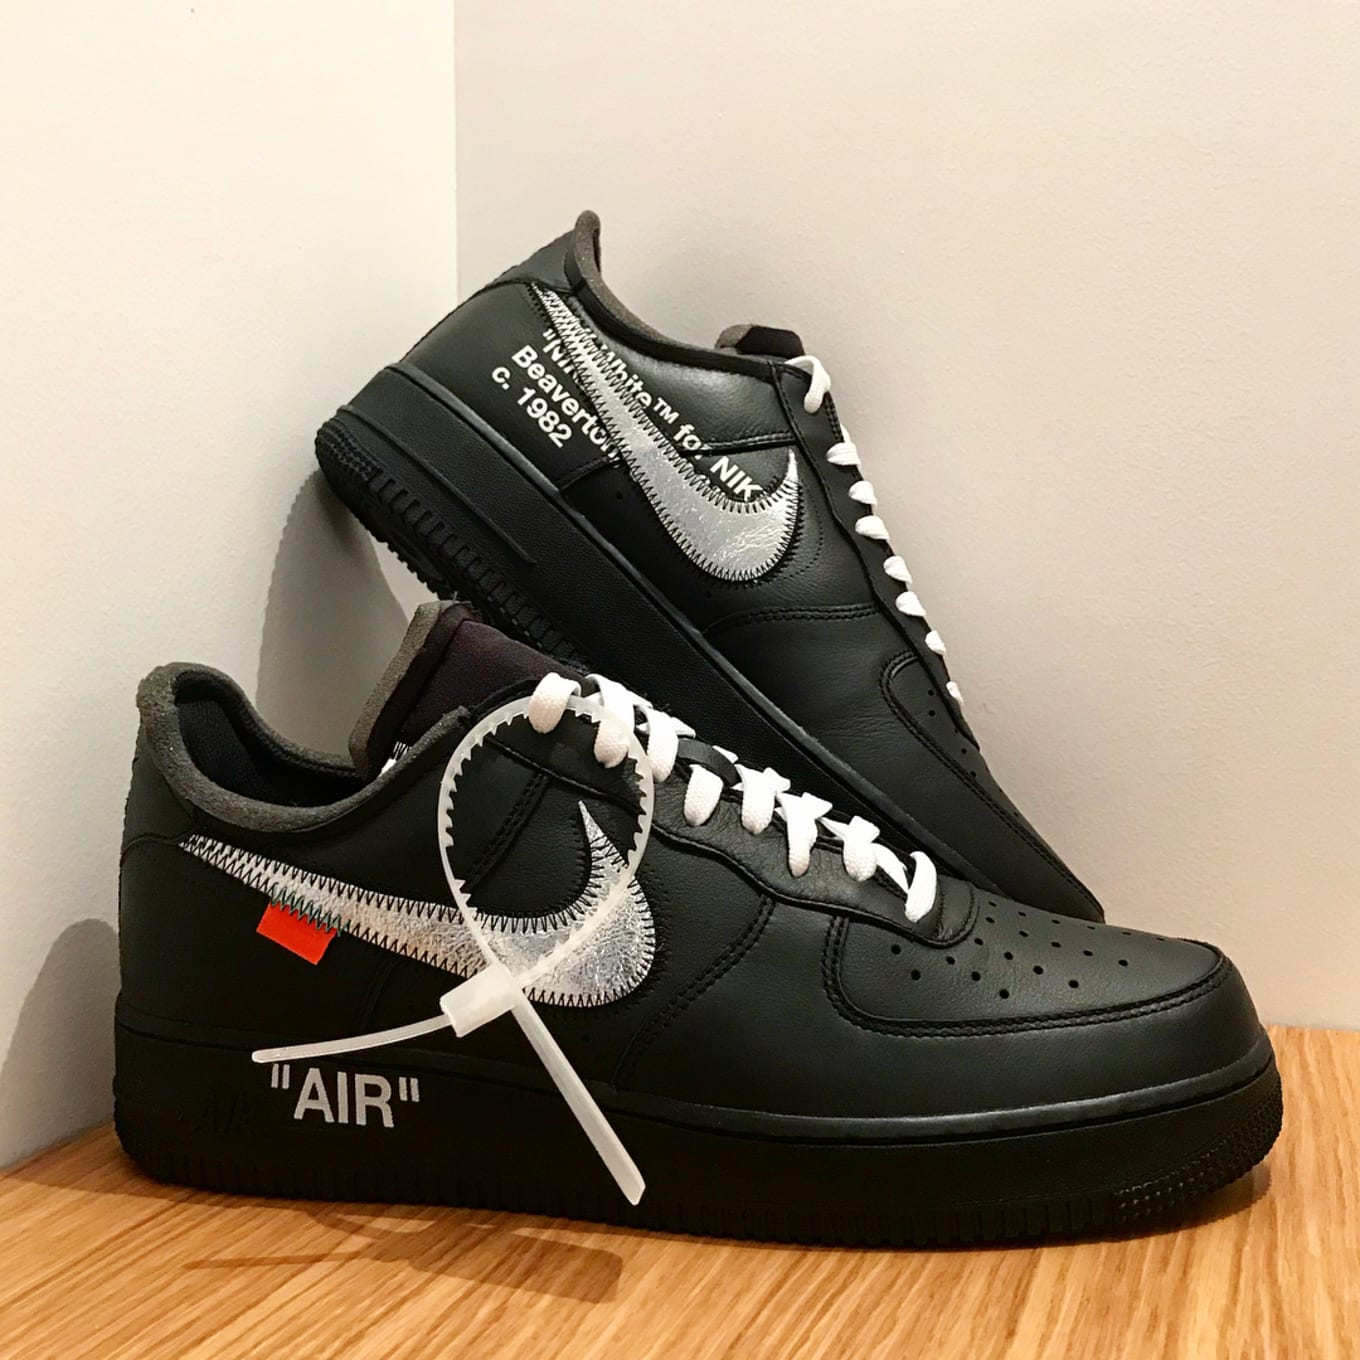 best sneakers 48b13 65ff4 Nike Air Force 1 Low. Image via suchafraud23. The black-based Off-White ...